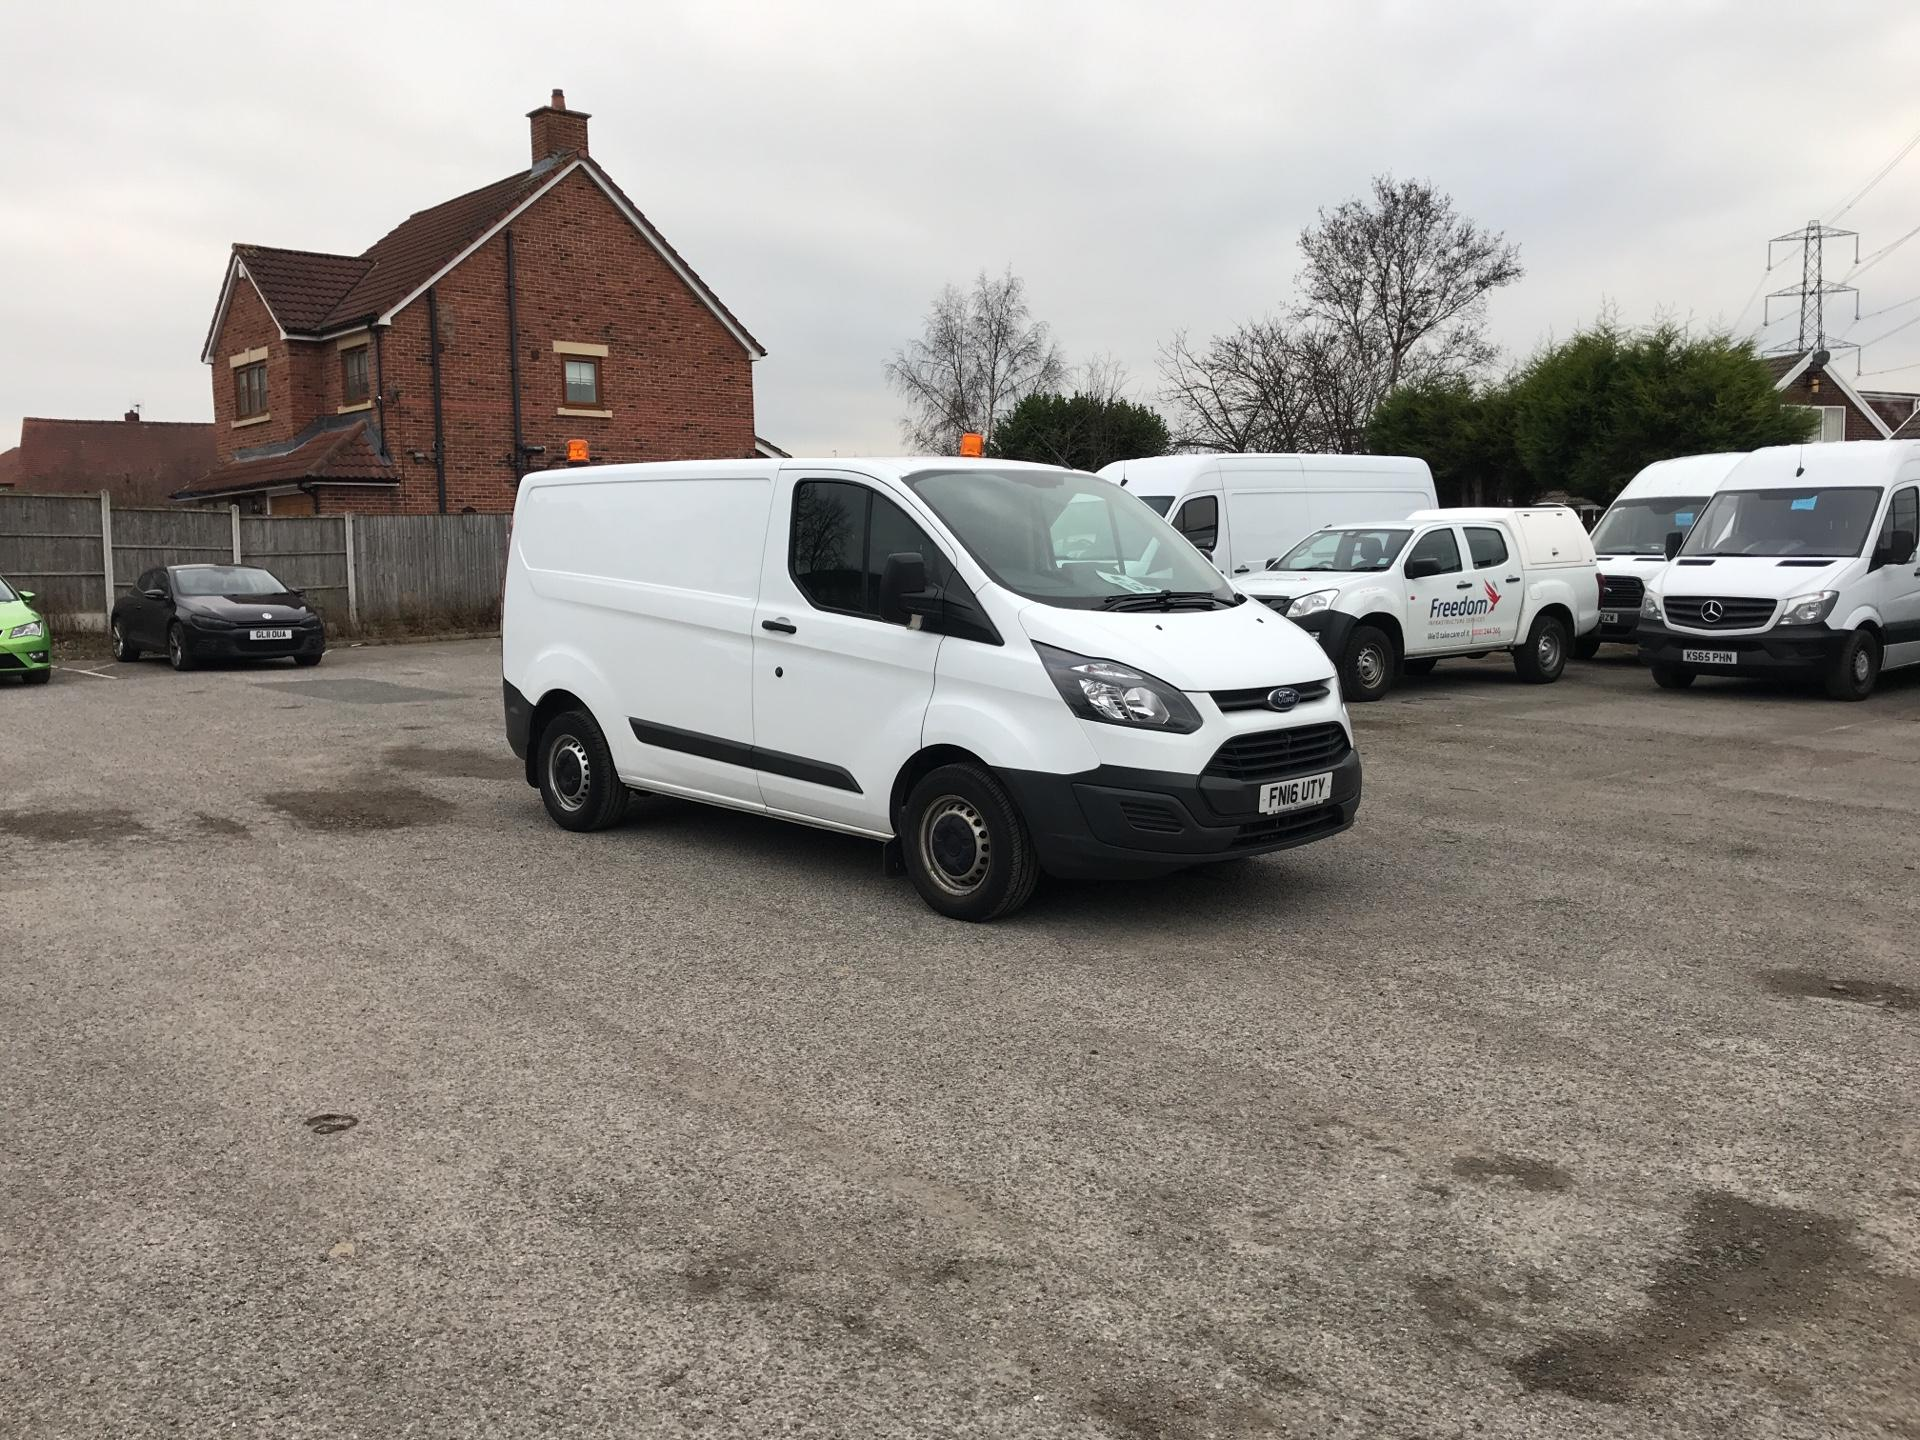 2016 Ford Transit Custom 290 L1 DIESEL FWD 2.2  TDCI 100PS LOW ROOF VAN EURO 5 *VALUE RANGE VEHICLE REFLECTED IN PRICE* (FN16UTY)